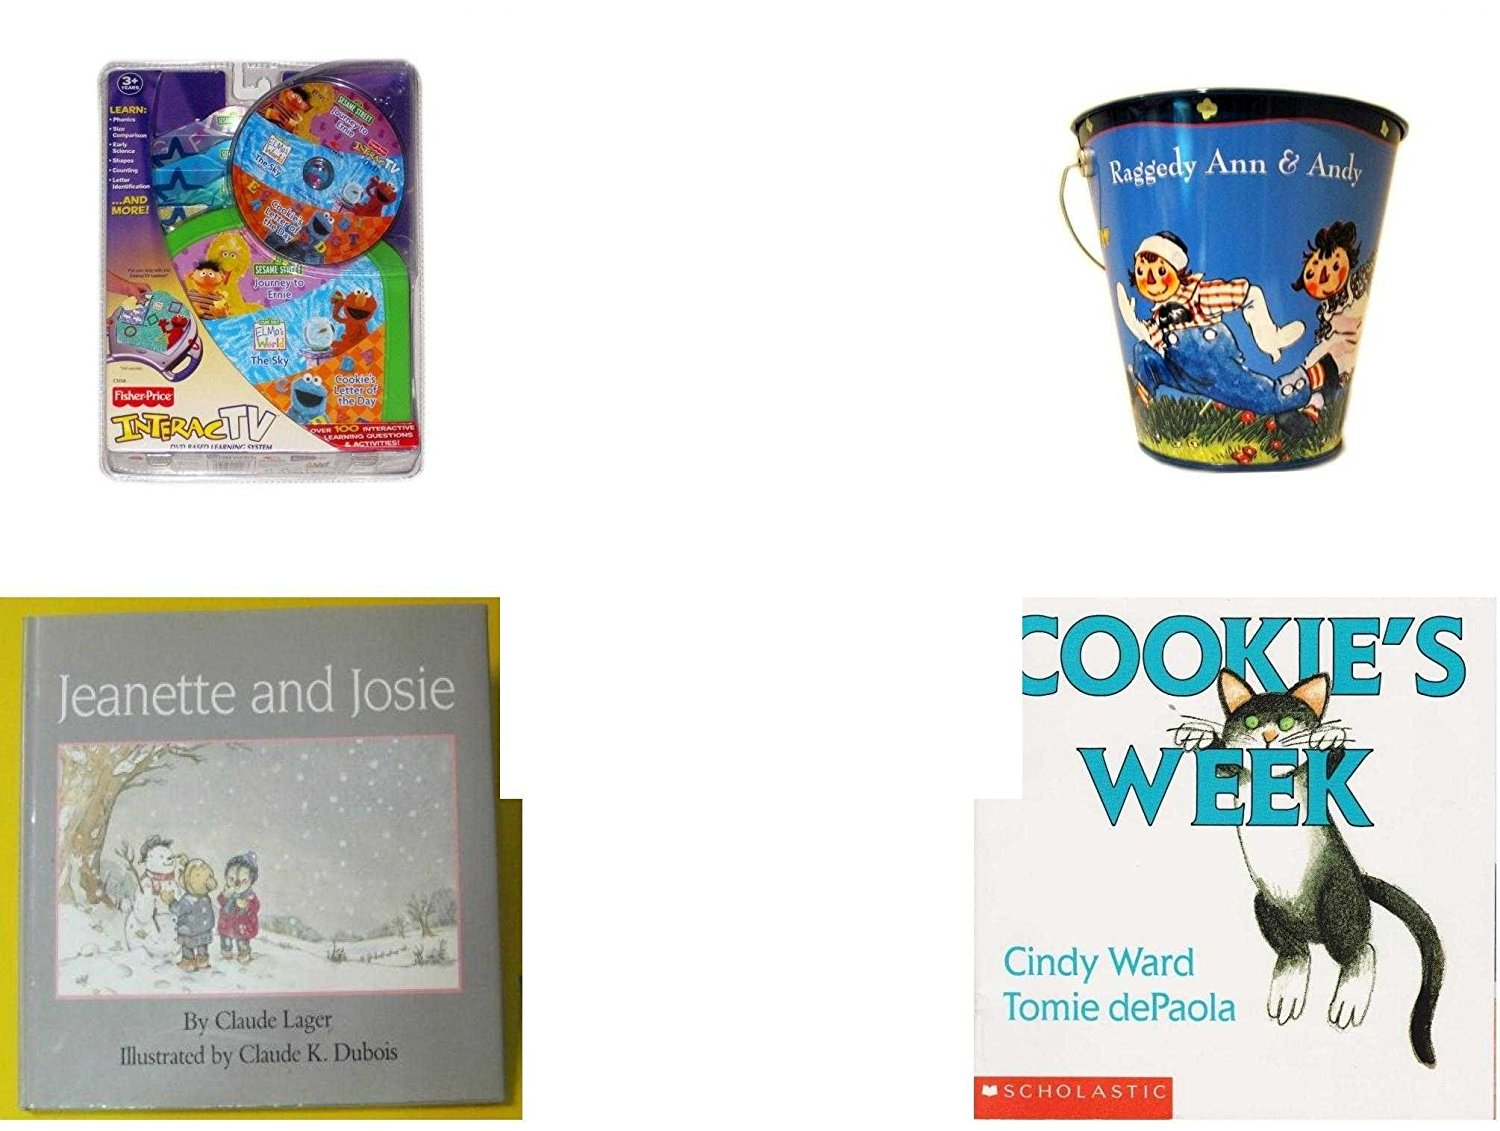 Children's Gift Bundle - Ages 3-5 [5 Piece] - InteracTV Sesame Street Volume 1 - Raggedy Ann & Andy Tin Pail Toy - Ty Teenie Beanie Nuts the Squirrel - Jeanette and Josie Hardcover Book - Cookie's W